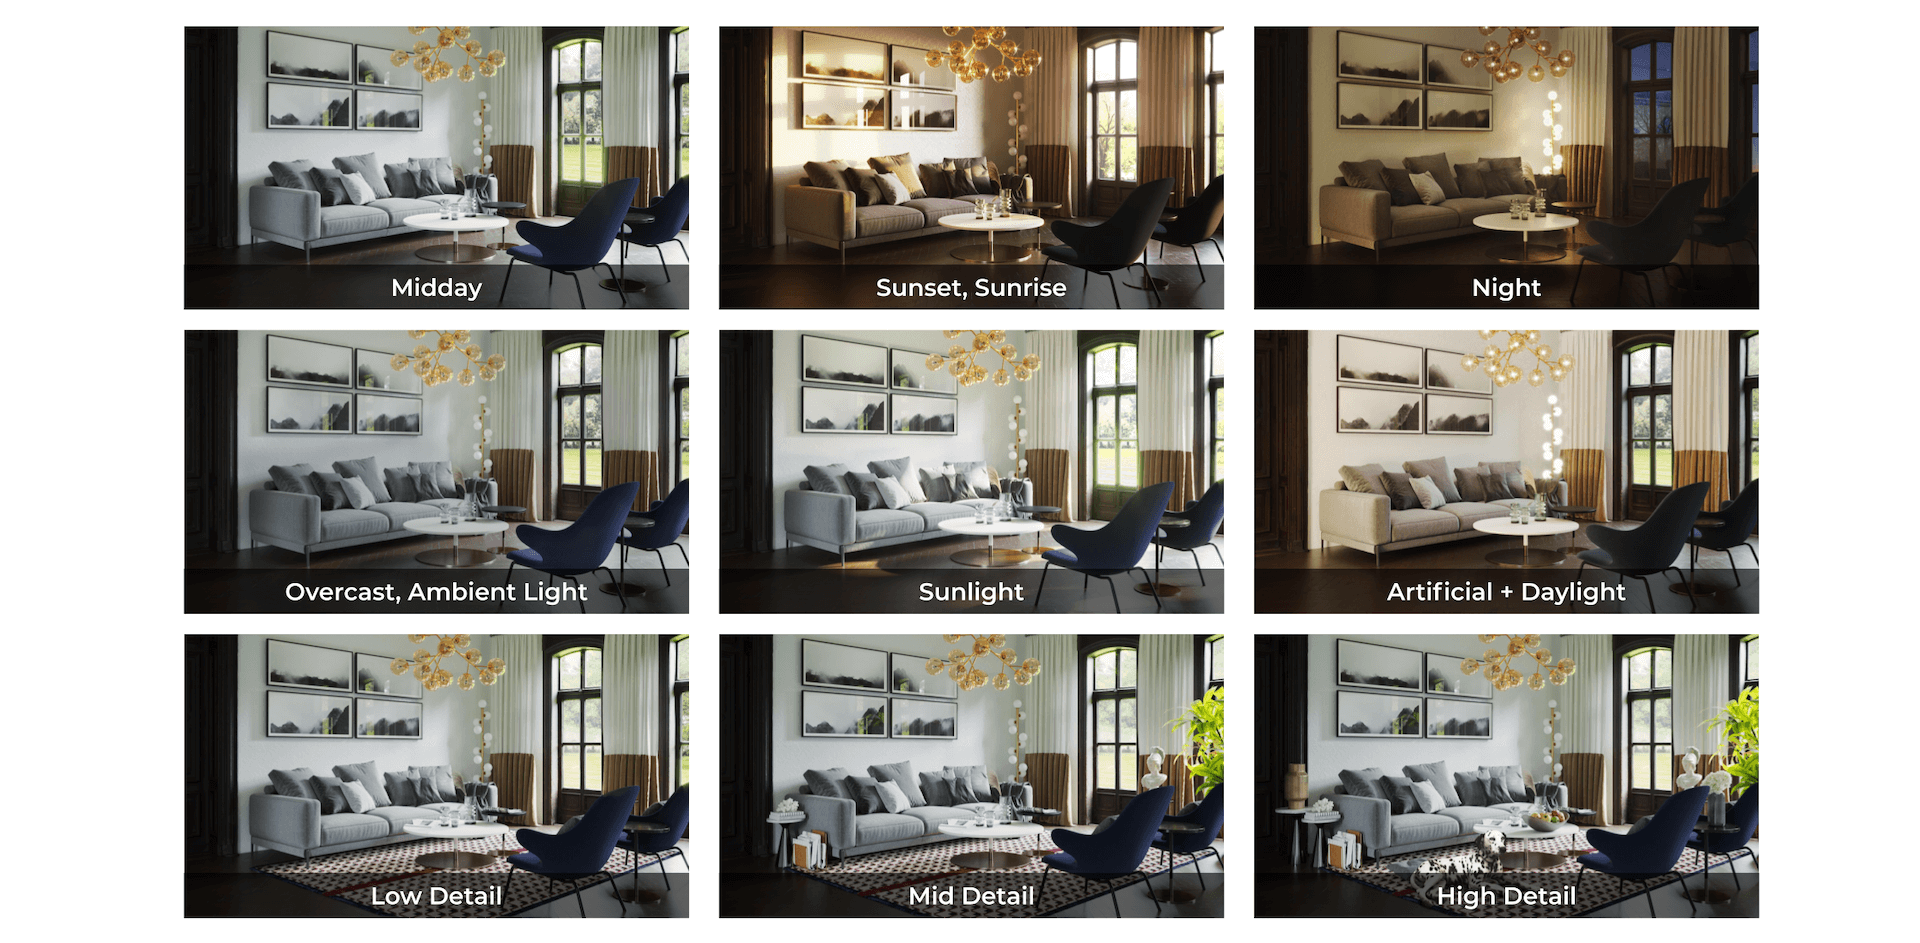 Interior Lighting and Atmosphere Options